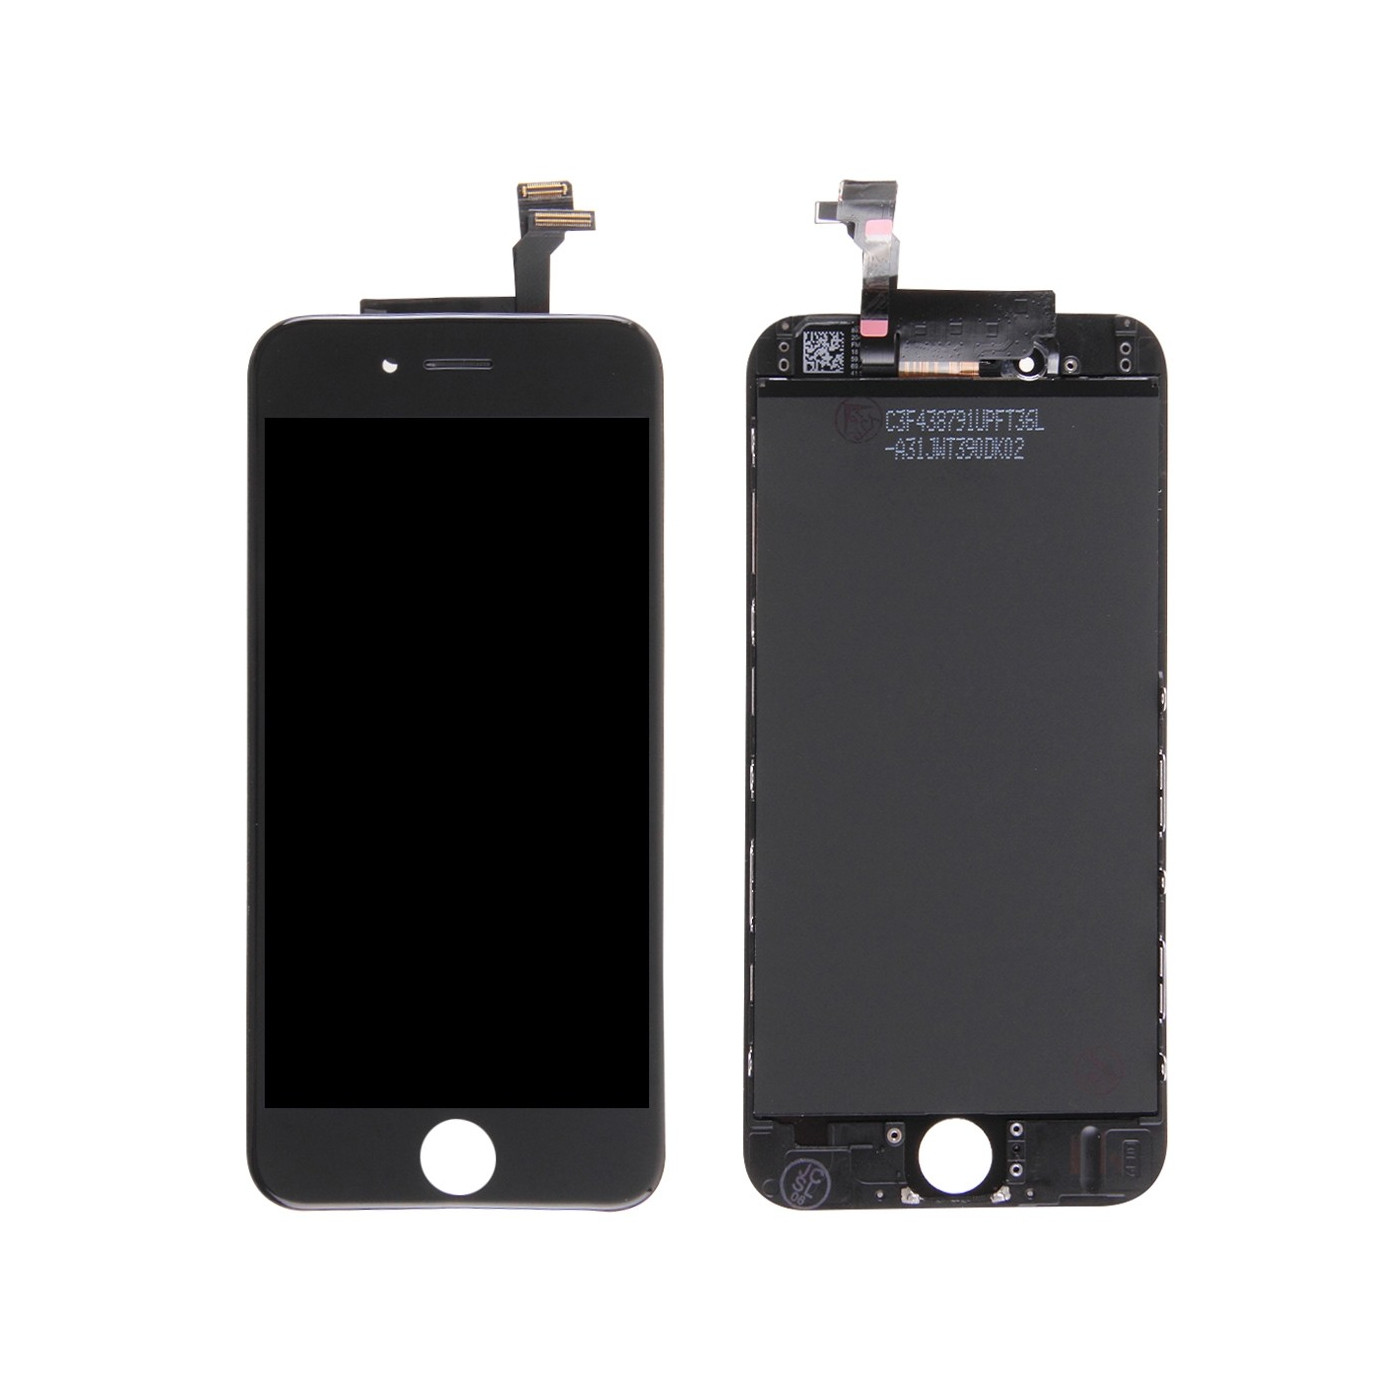 LCD touch screen display for apple iphone 6 black frame glass retina